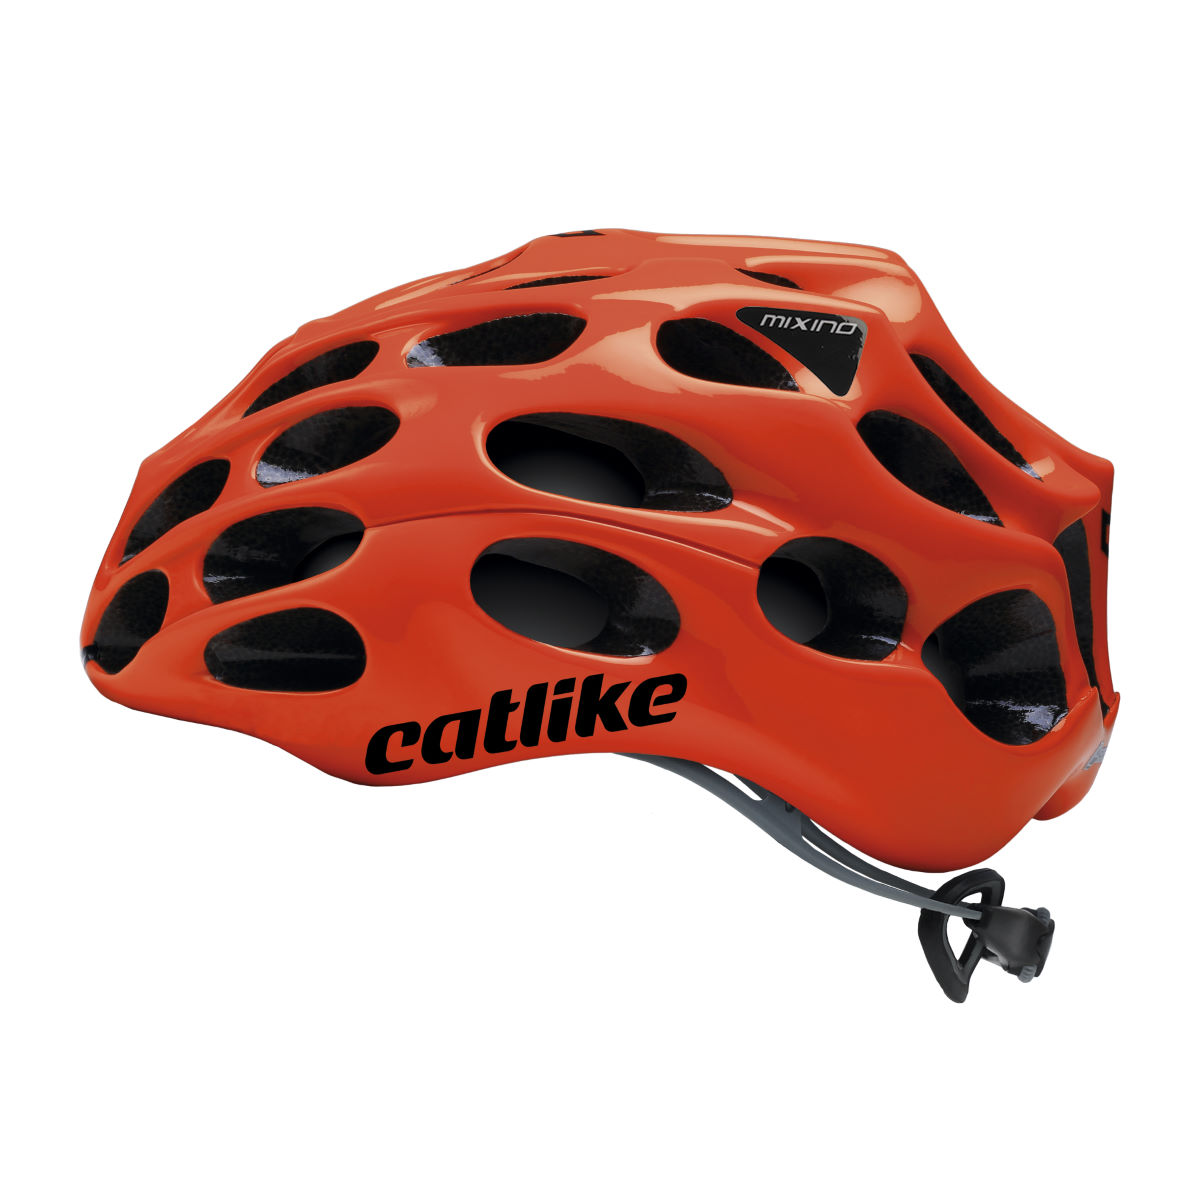 Casque de route Catlike Mixino - Medium Fluro Orange